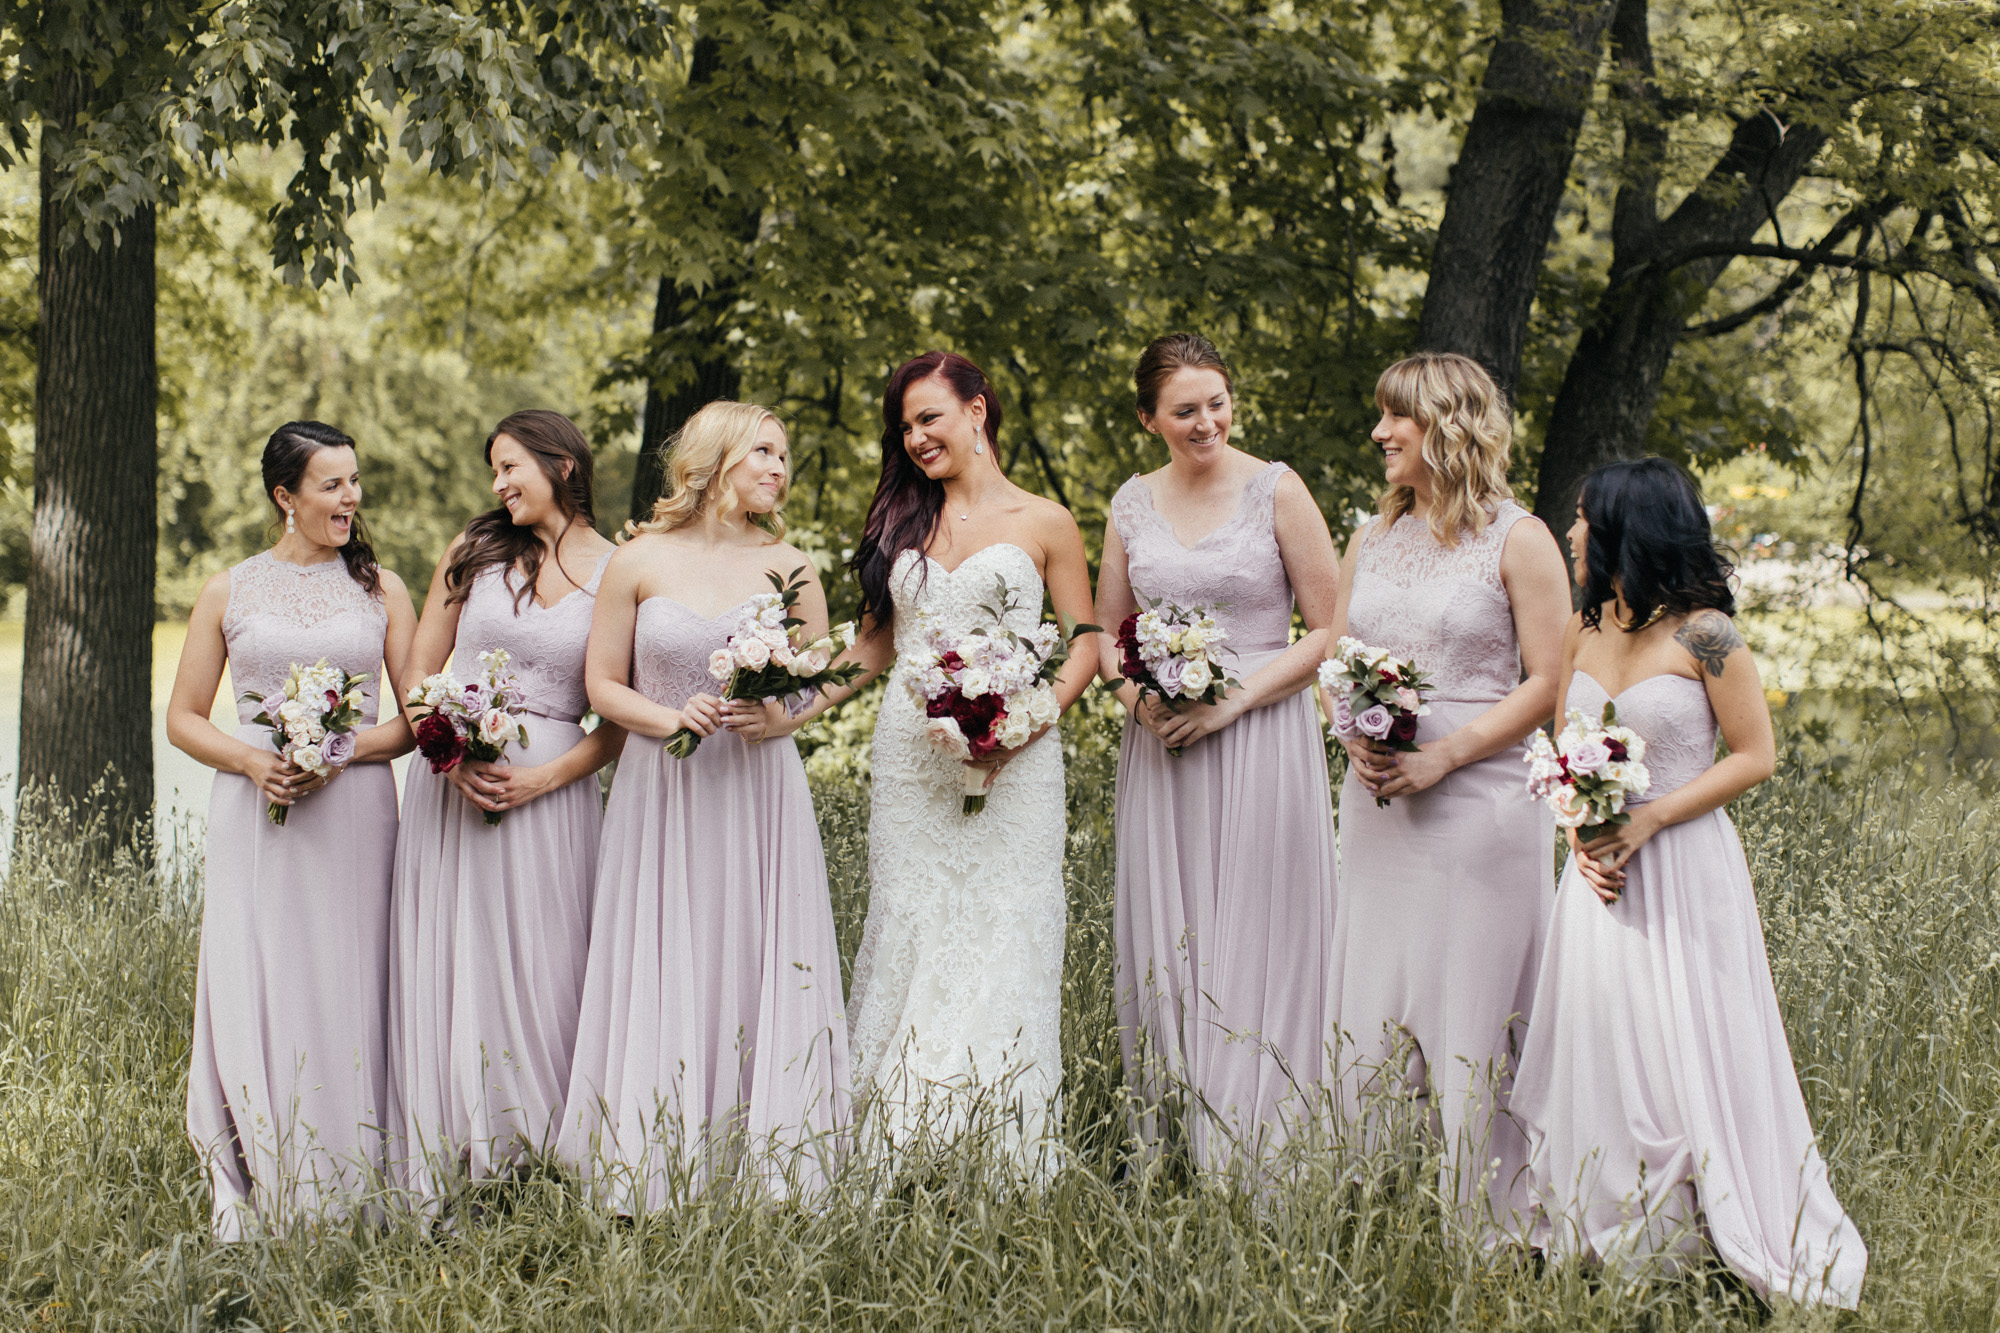 5X2A3558NYC twedding photography brooklyn wedding photography prospect park boathouse boris zaretsky brooklyn wedding photographer copy.jpg